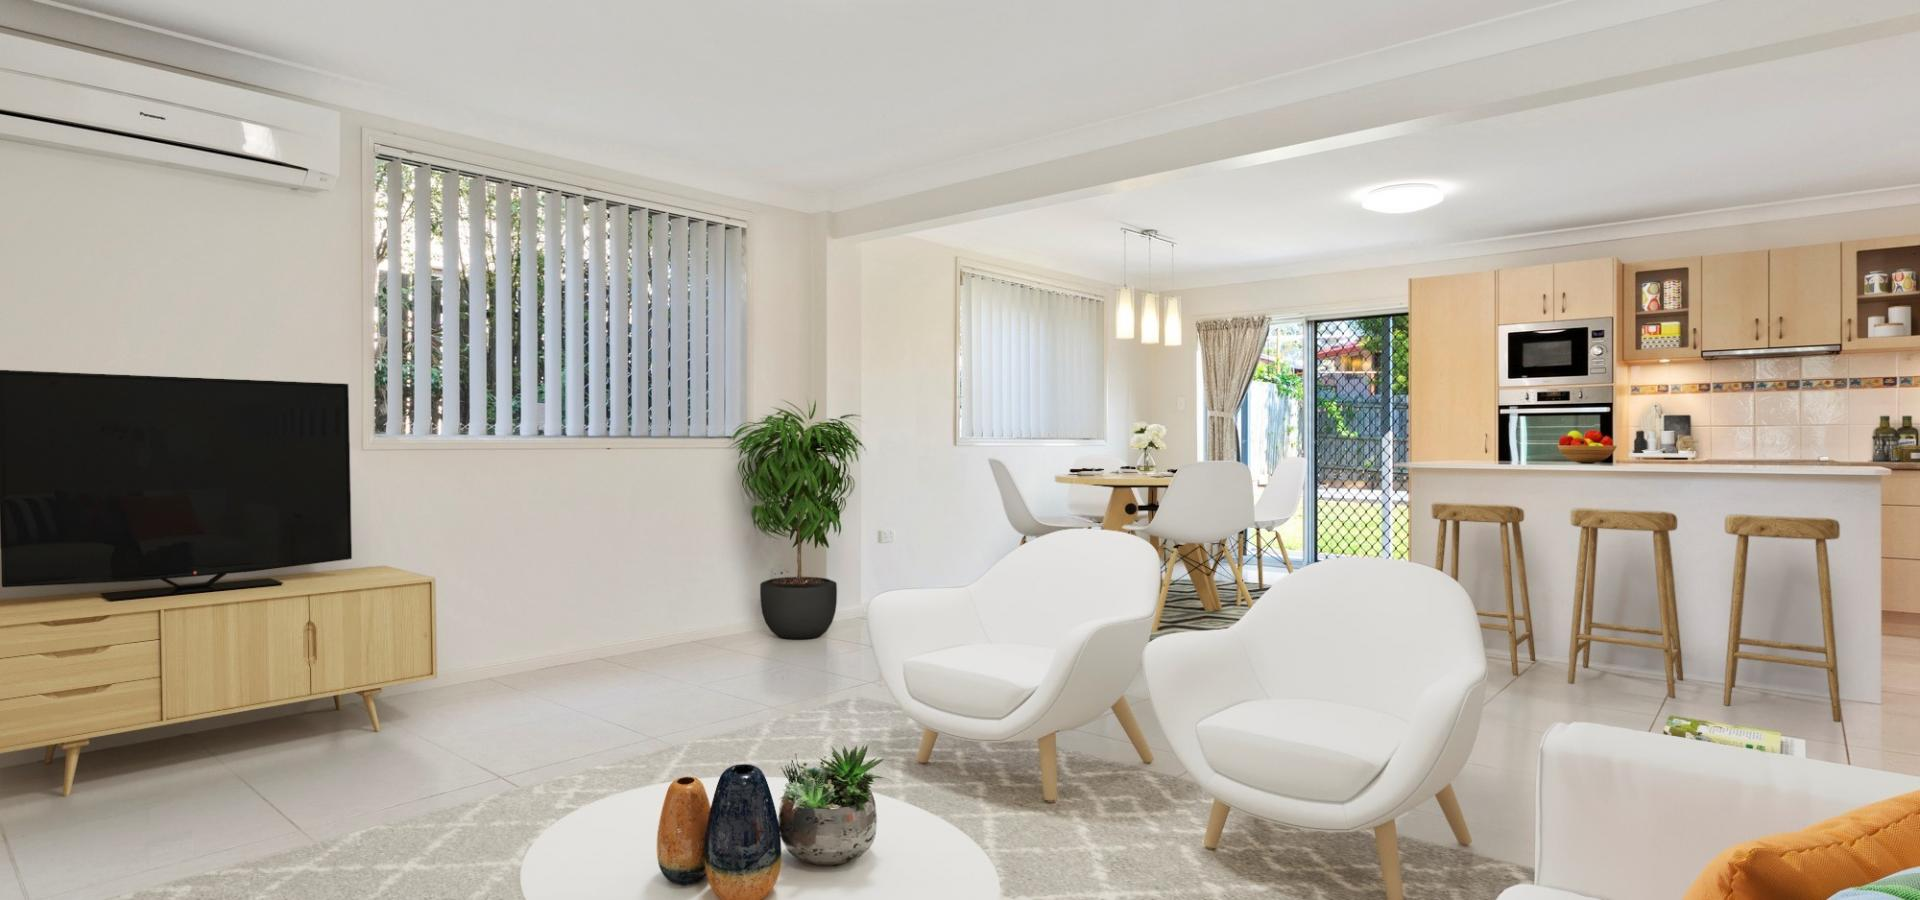 The surprise is on the inside - large renovated family home